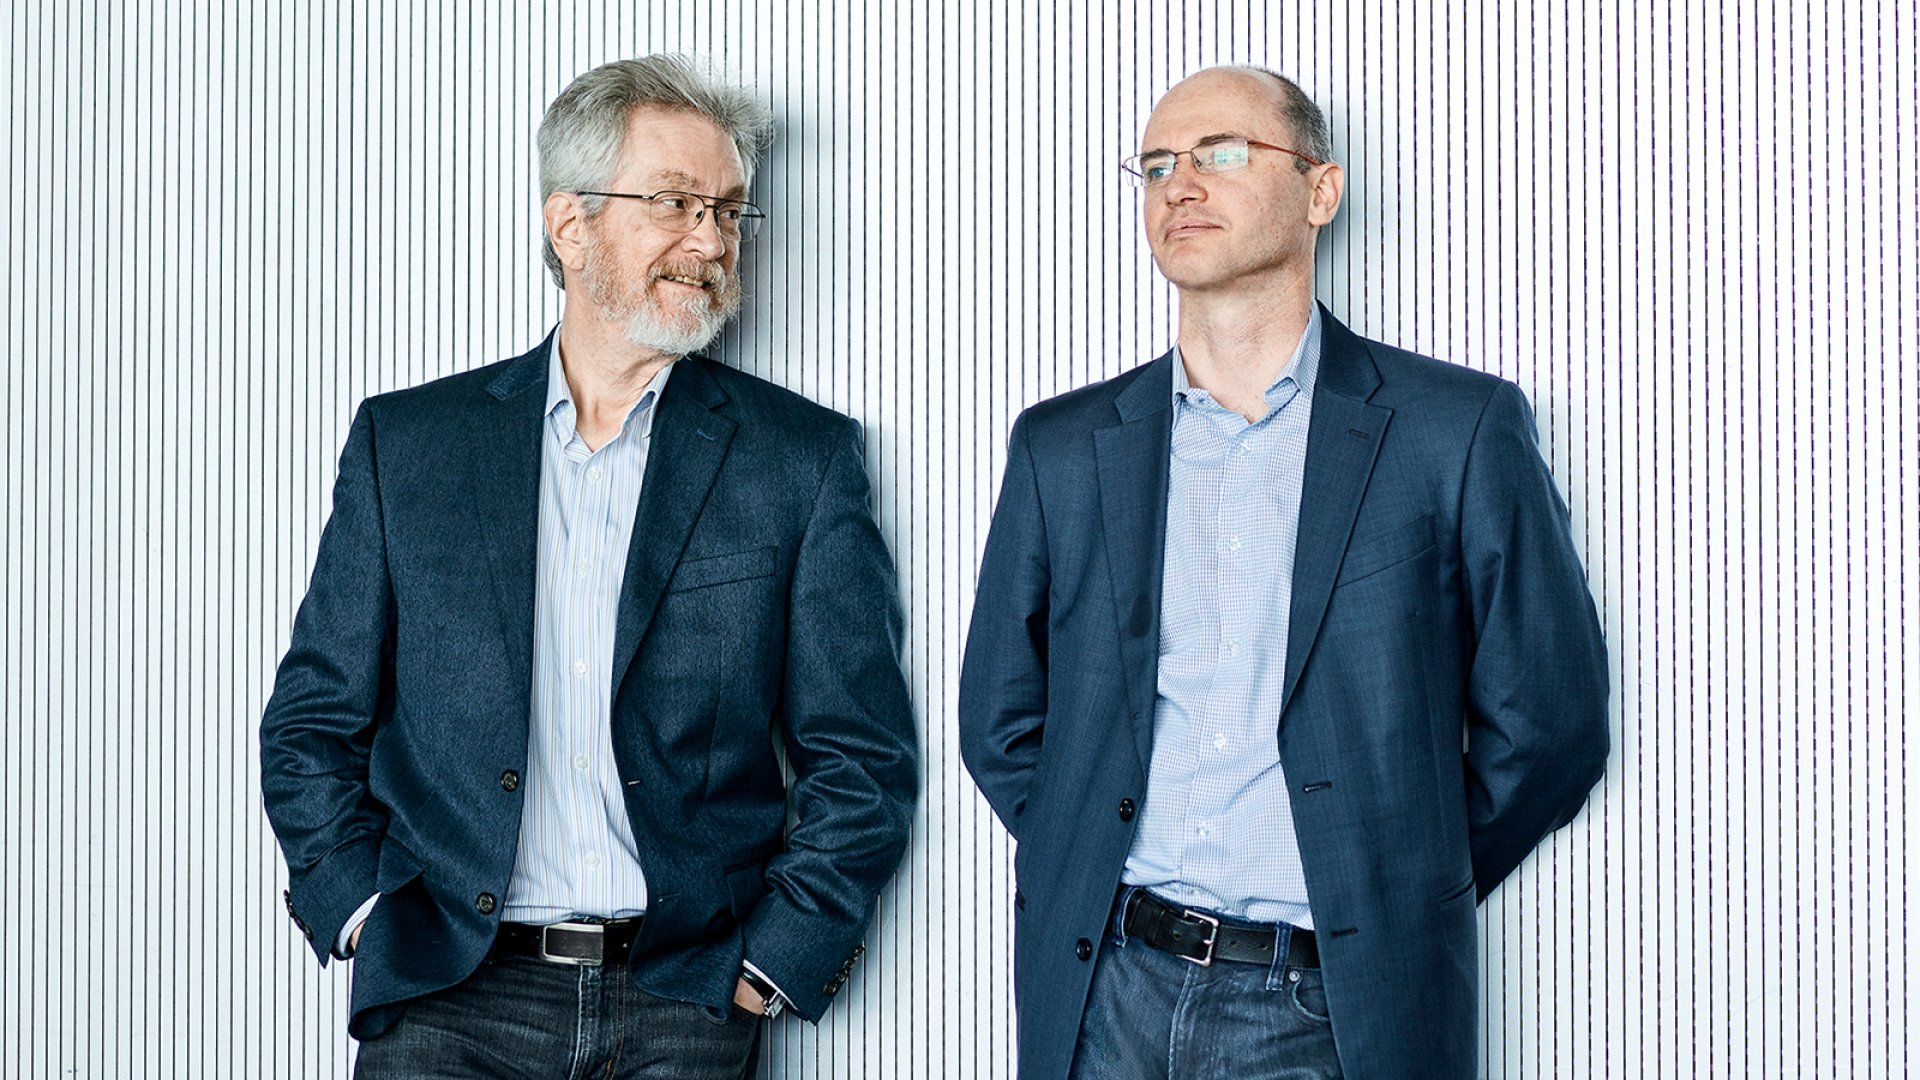 Cogito co-founders Sandy Pentland (left) and Joshua Feast. The two met when Feast took a Pentland-curated seminar at MIT. Pentland's research on nonverbal social cues gave Feast the inspiration for the company.